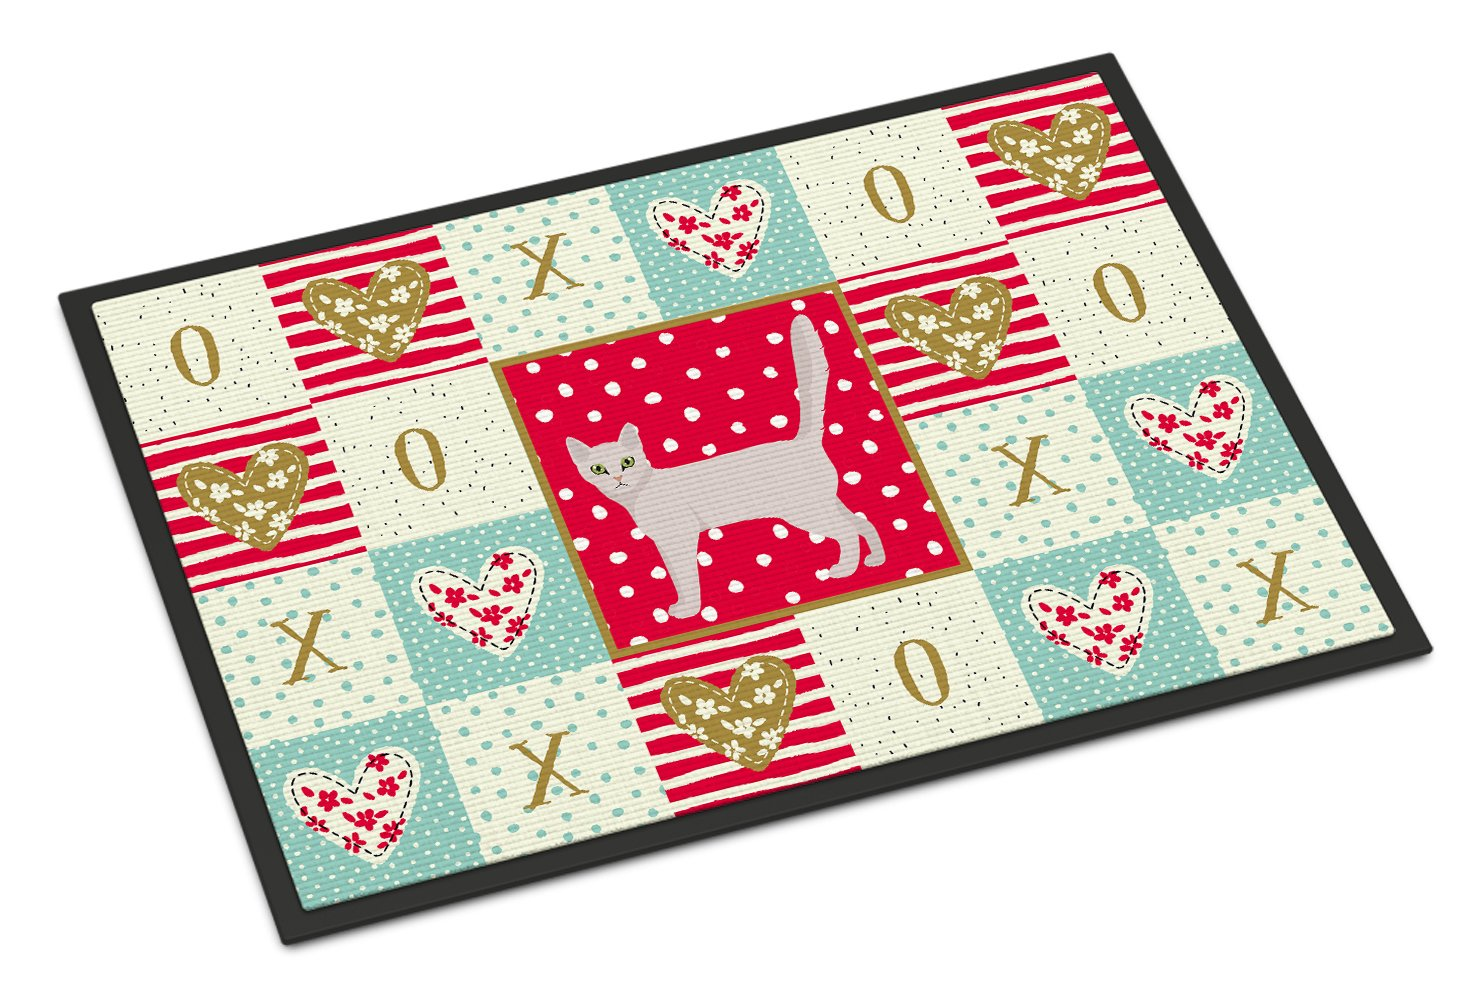 Burmilla Cat Love Indoor or Outdoor Mat 24x36 CK5571JMAT by Caroline's Treasures